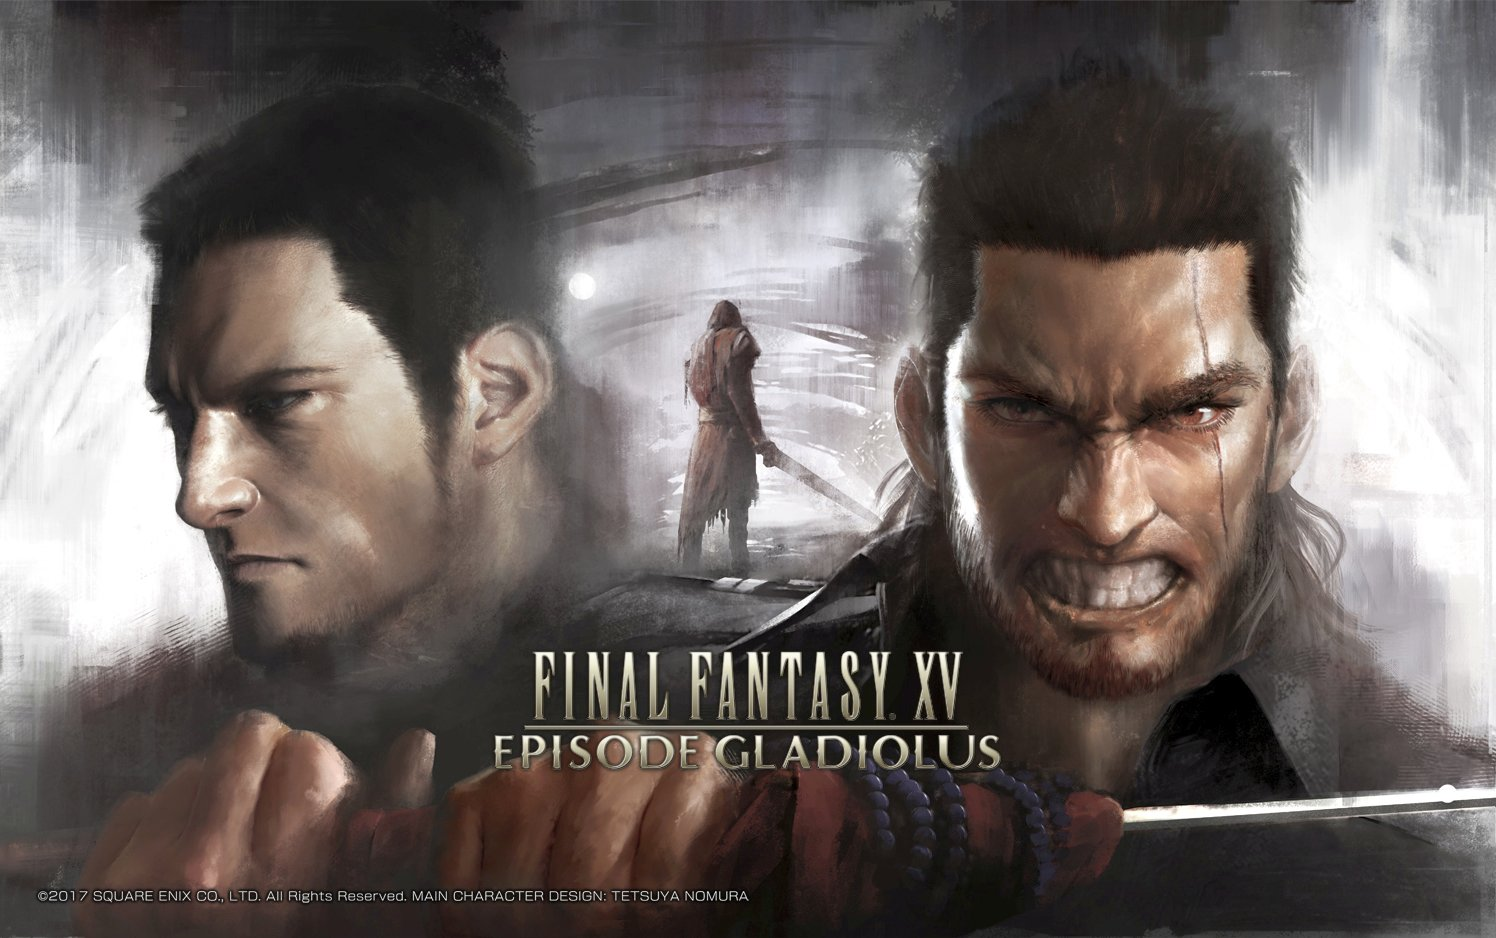 Final Fantasy XV Episode Gladiolus DLC Detailed